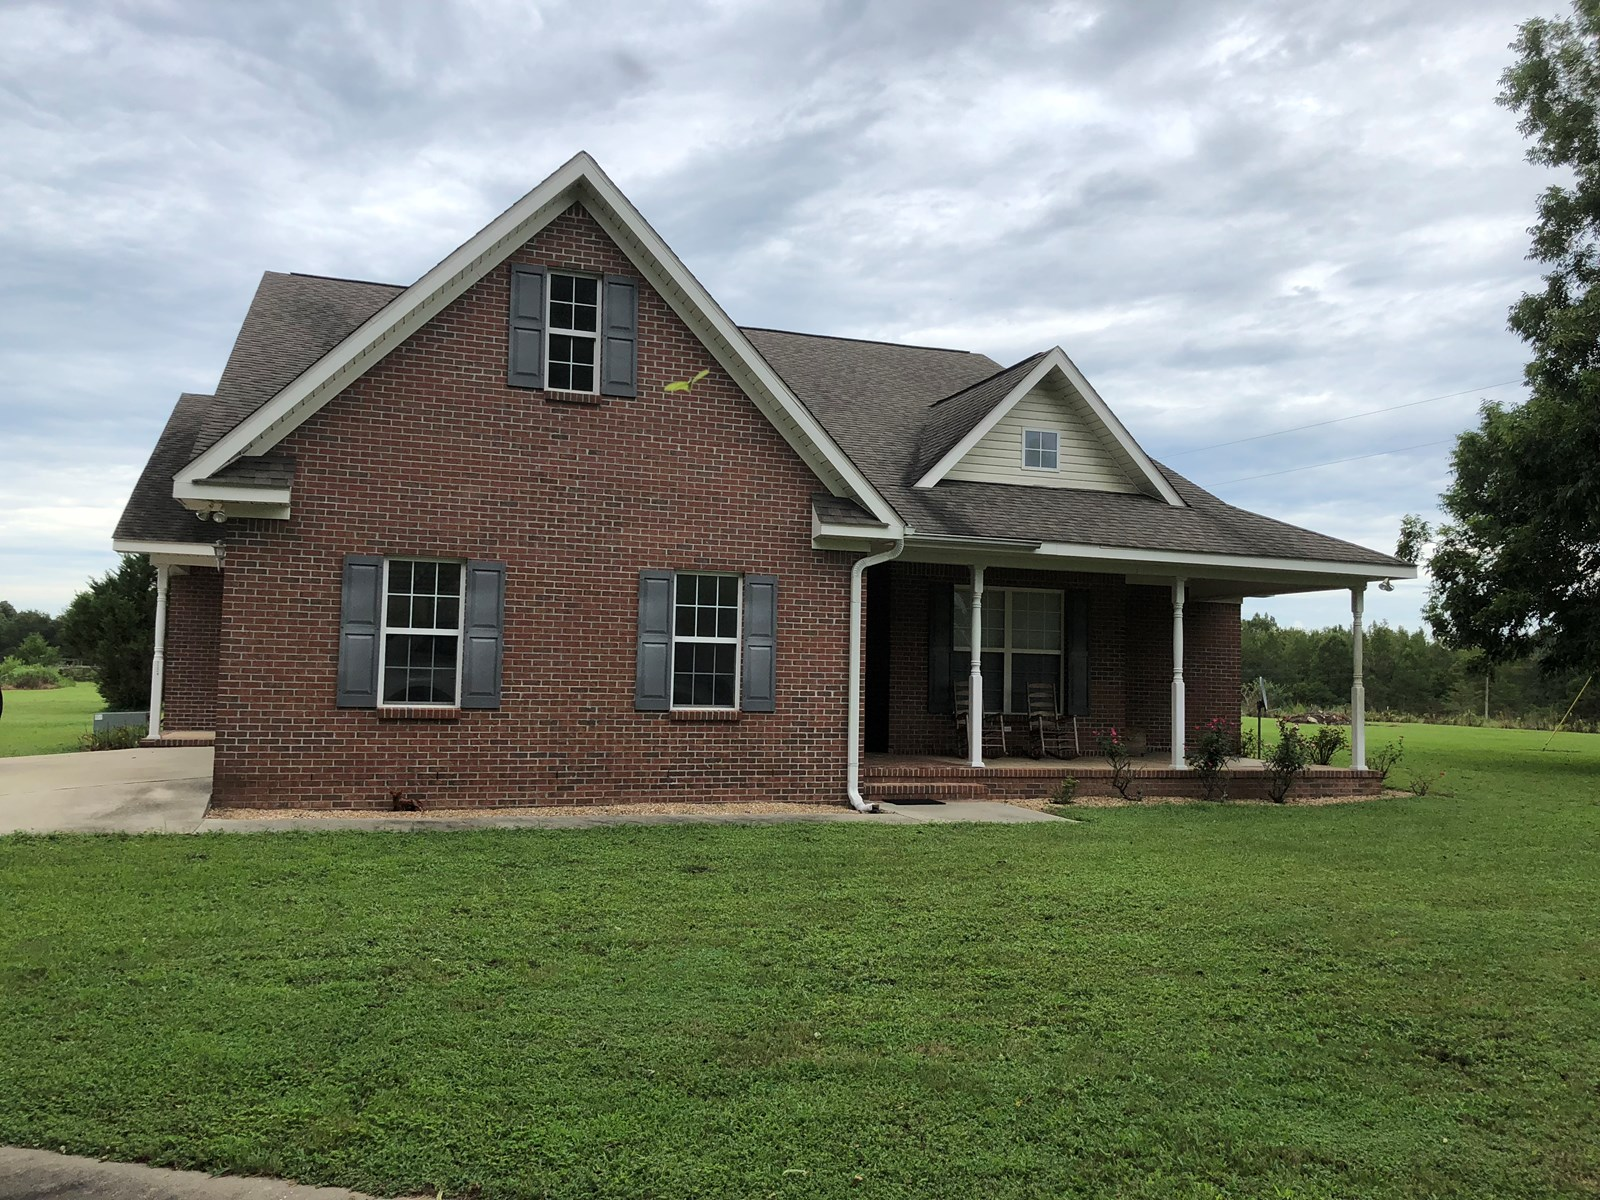 3B/2B BRICK HOME ON 1.7 ACRES FLORALA, ALABAMA